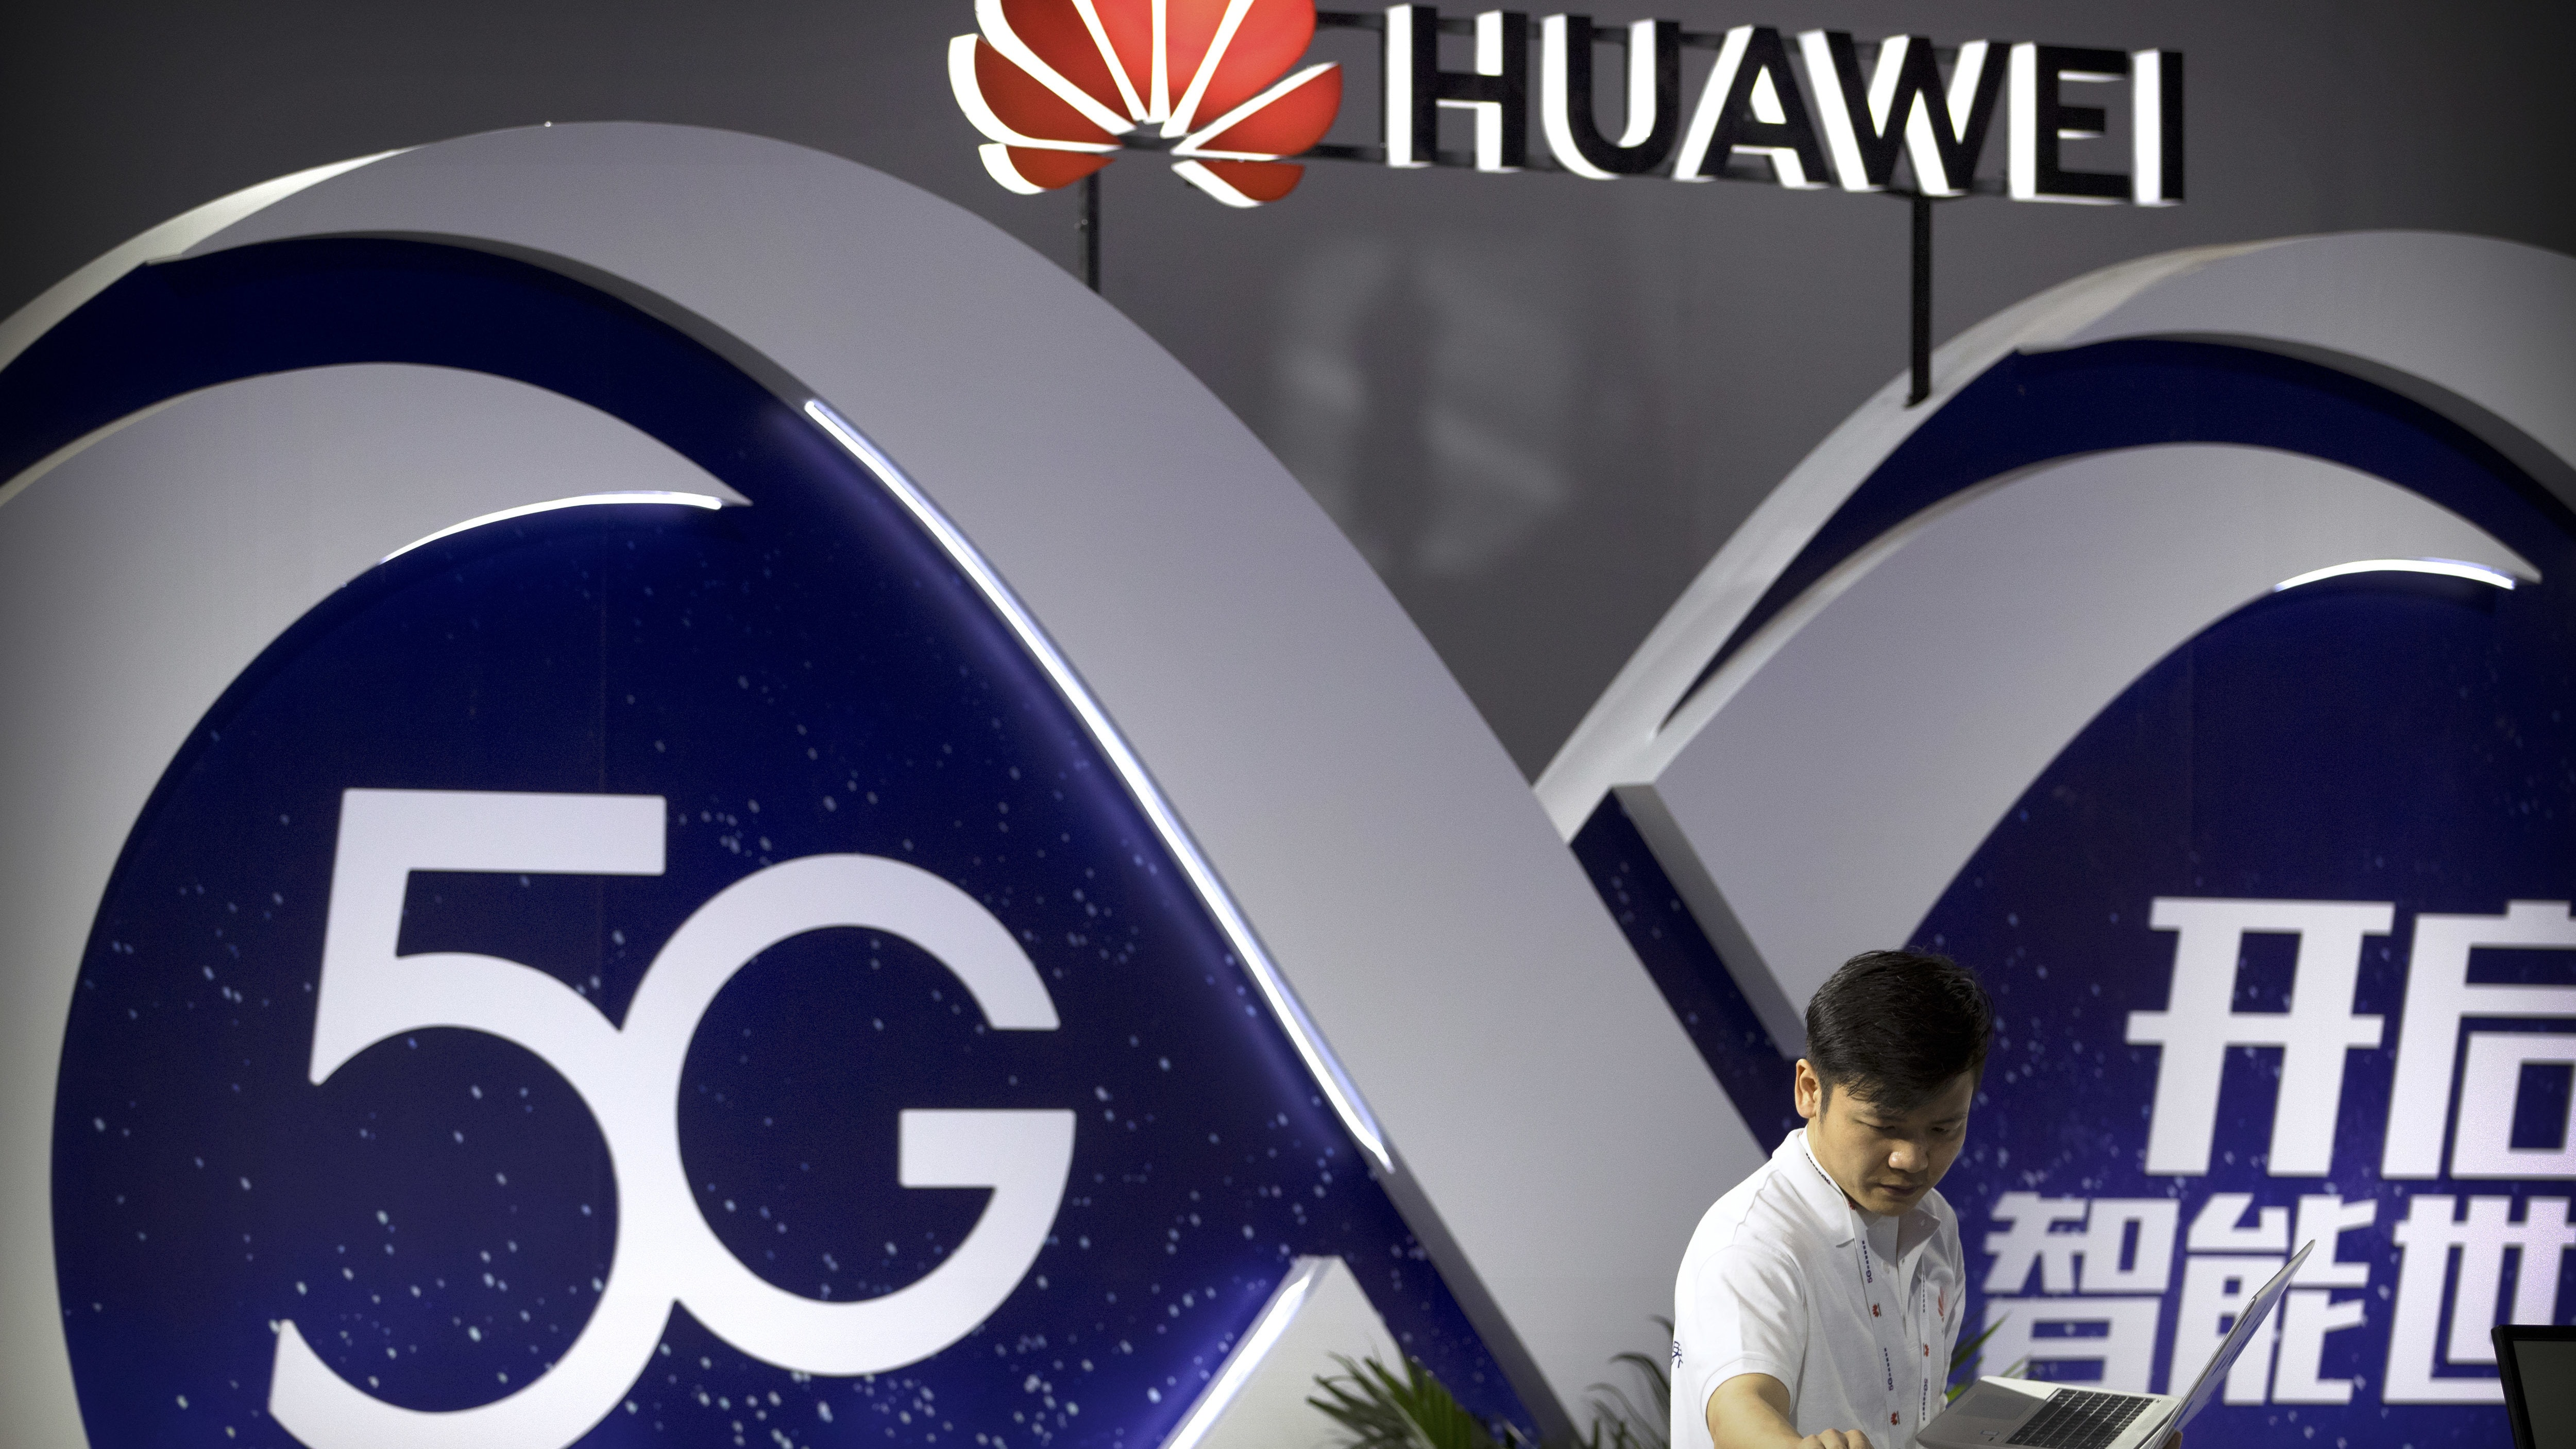 New Zealand bans Huawei from 5G upgrade over security fears